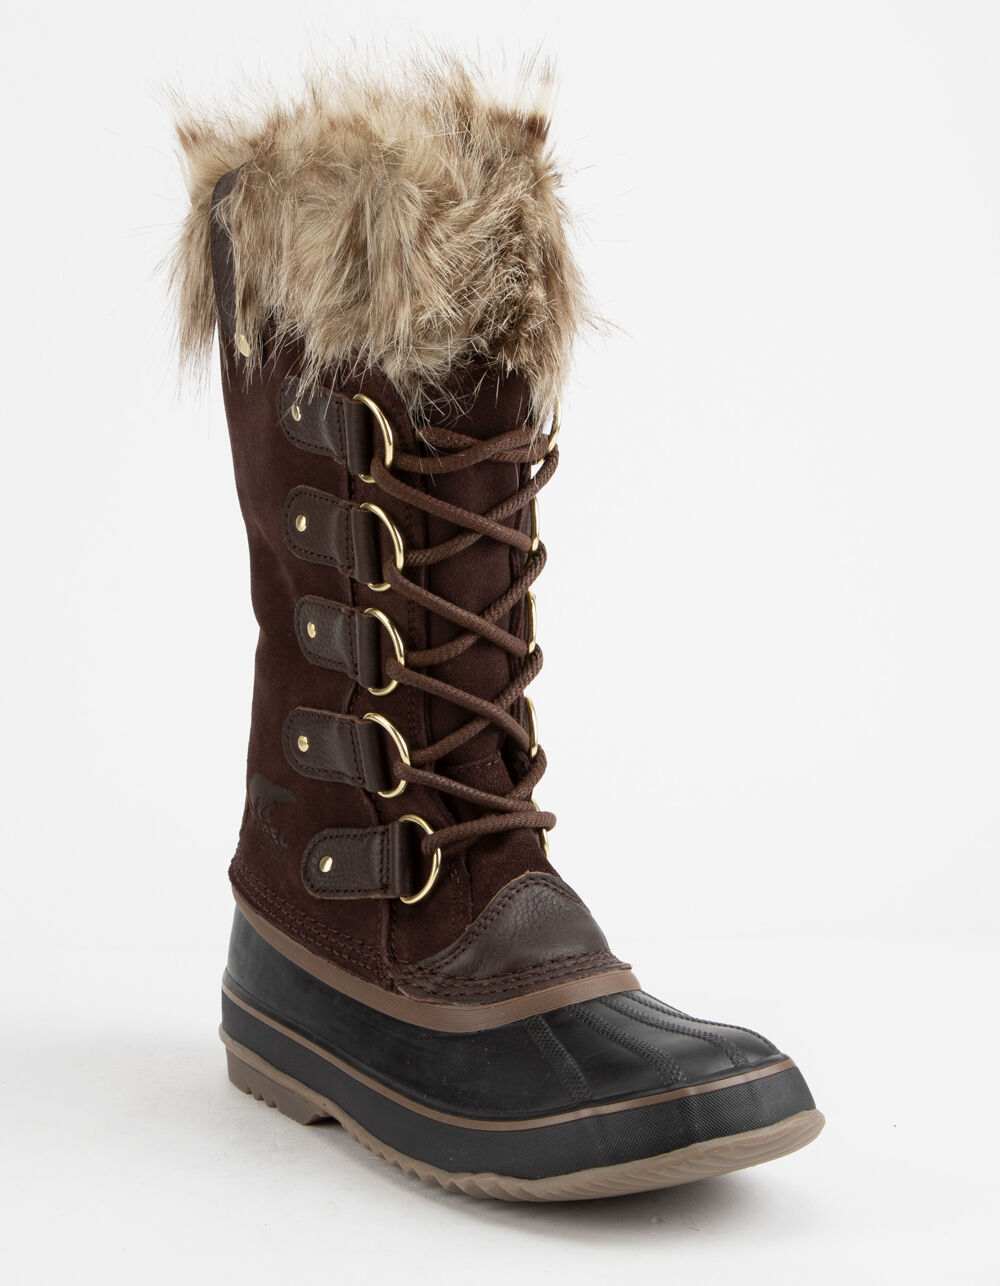 SOREL Joan Of Artic Cattail Boots